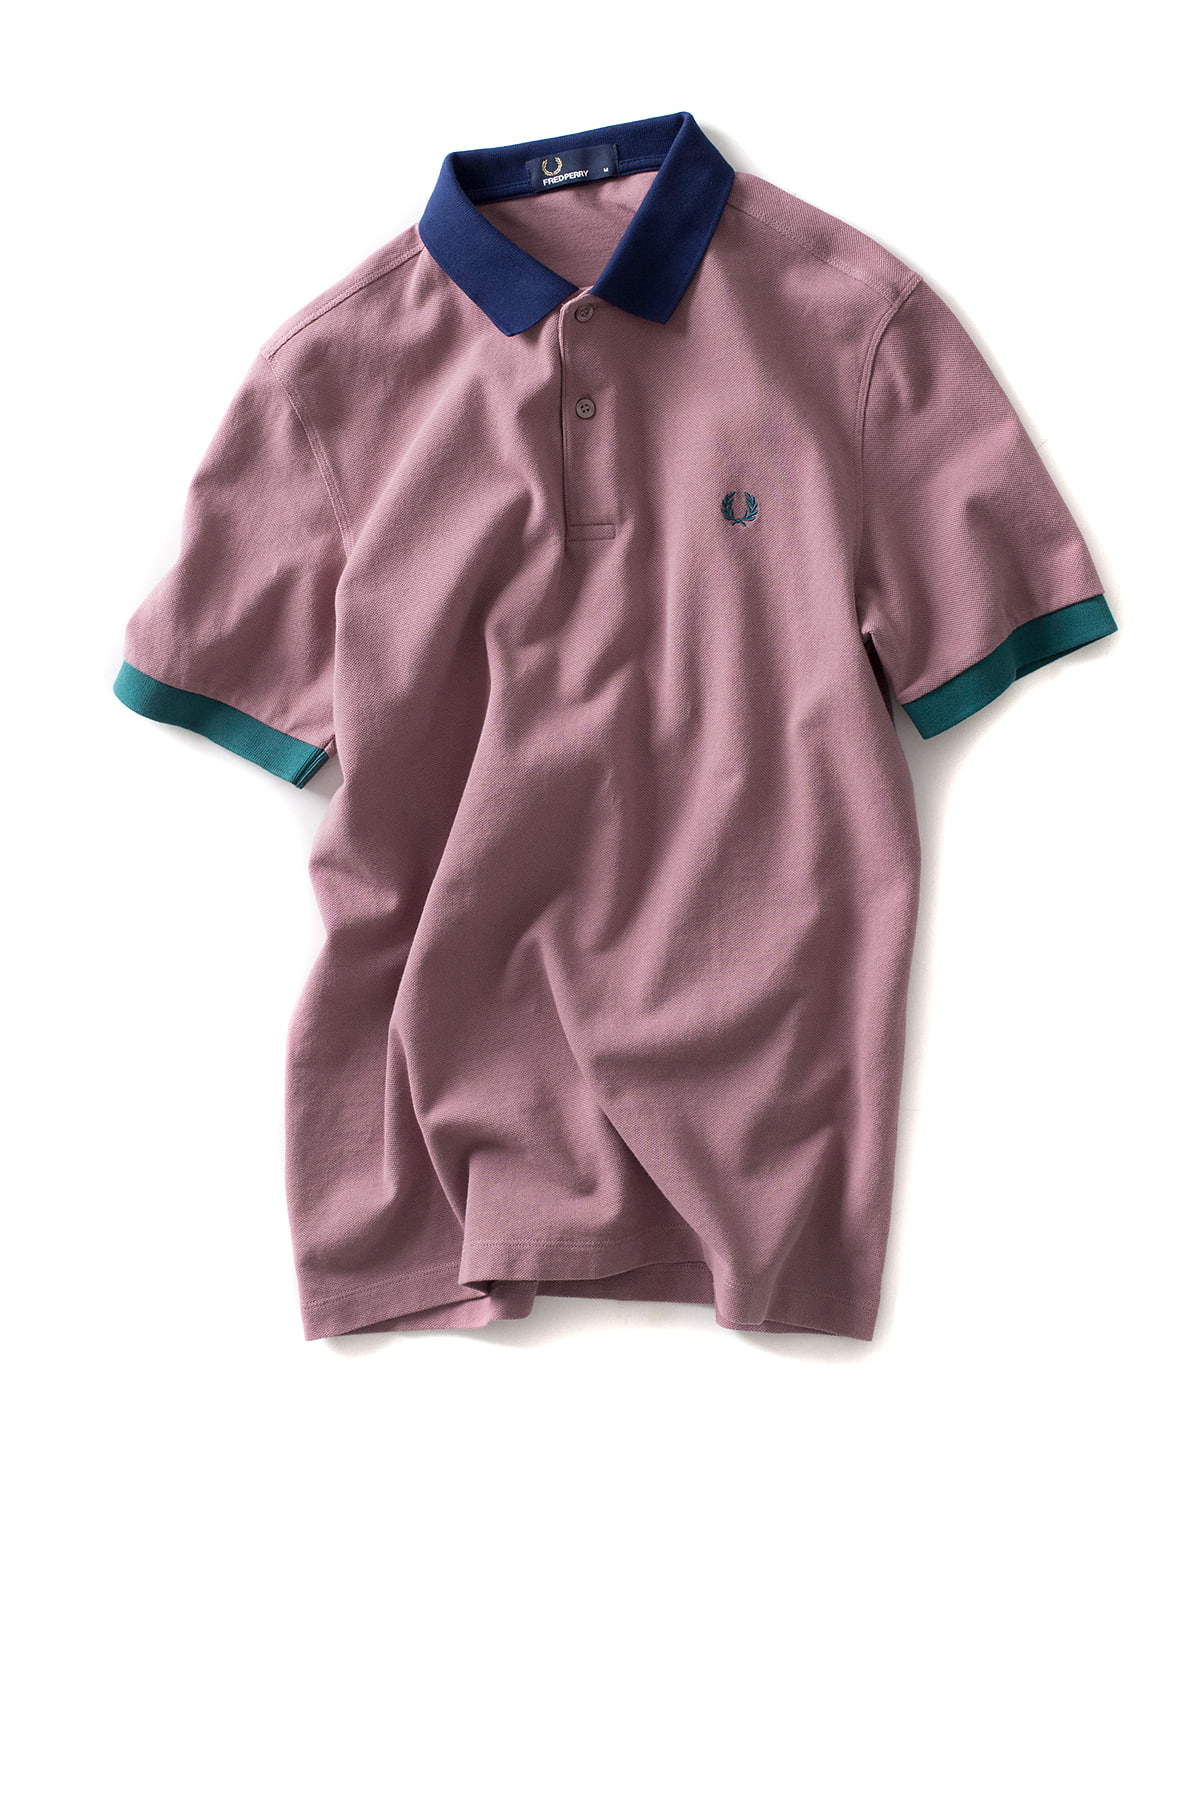 FRED PERRY : Colour Block Pique Shirt (Rose Grey)